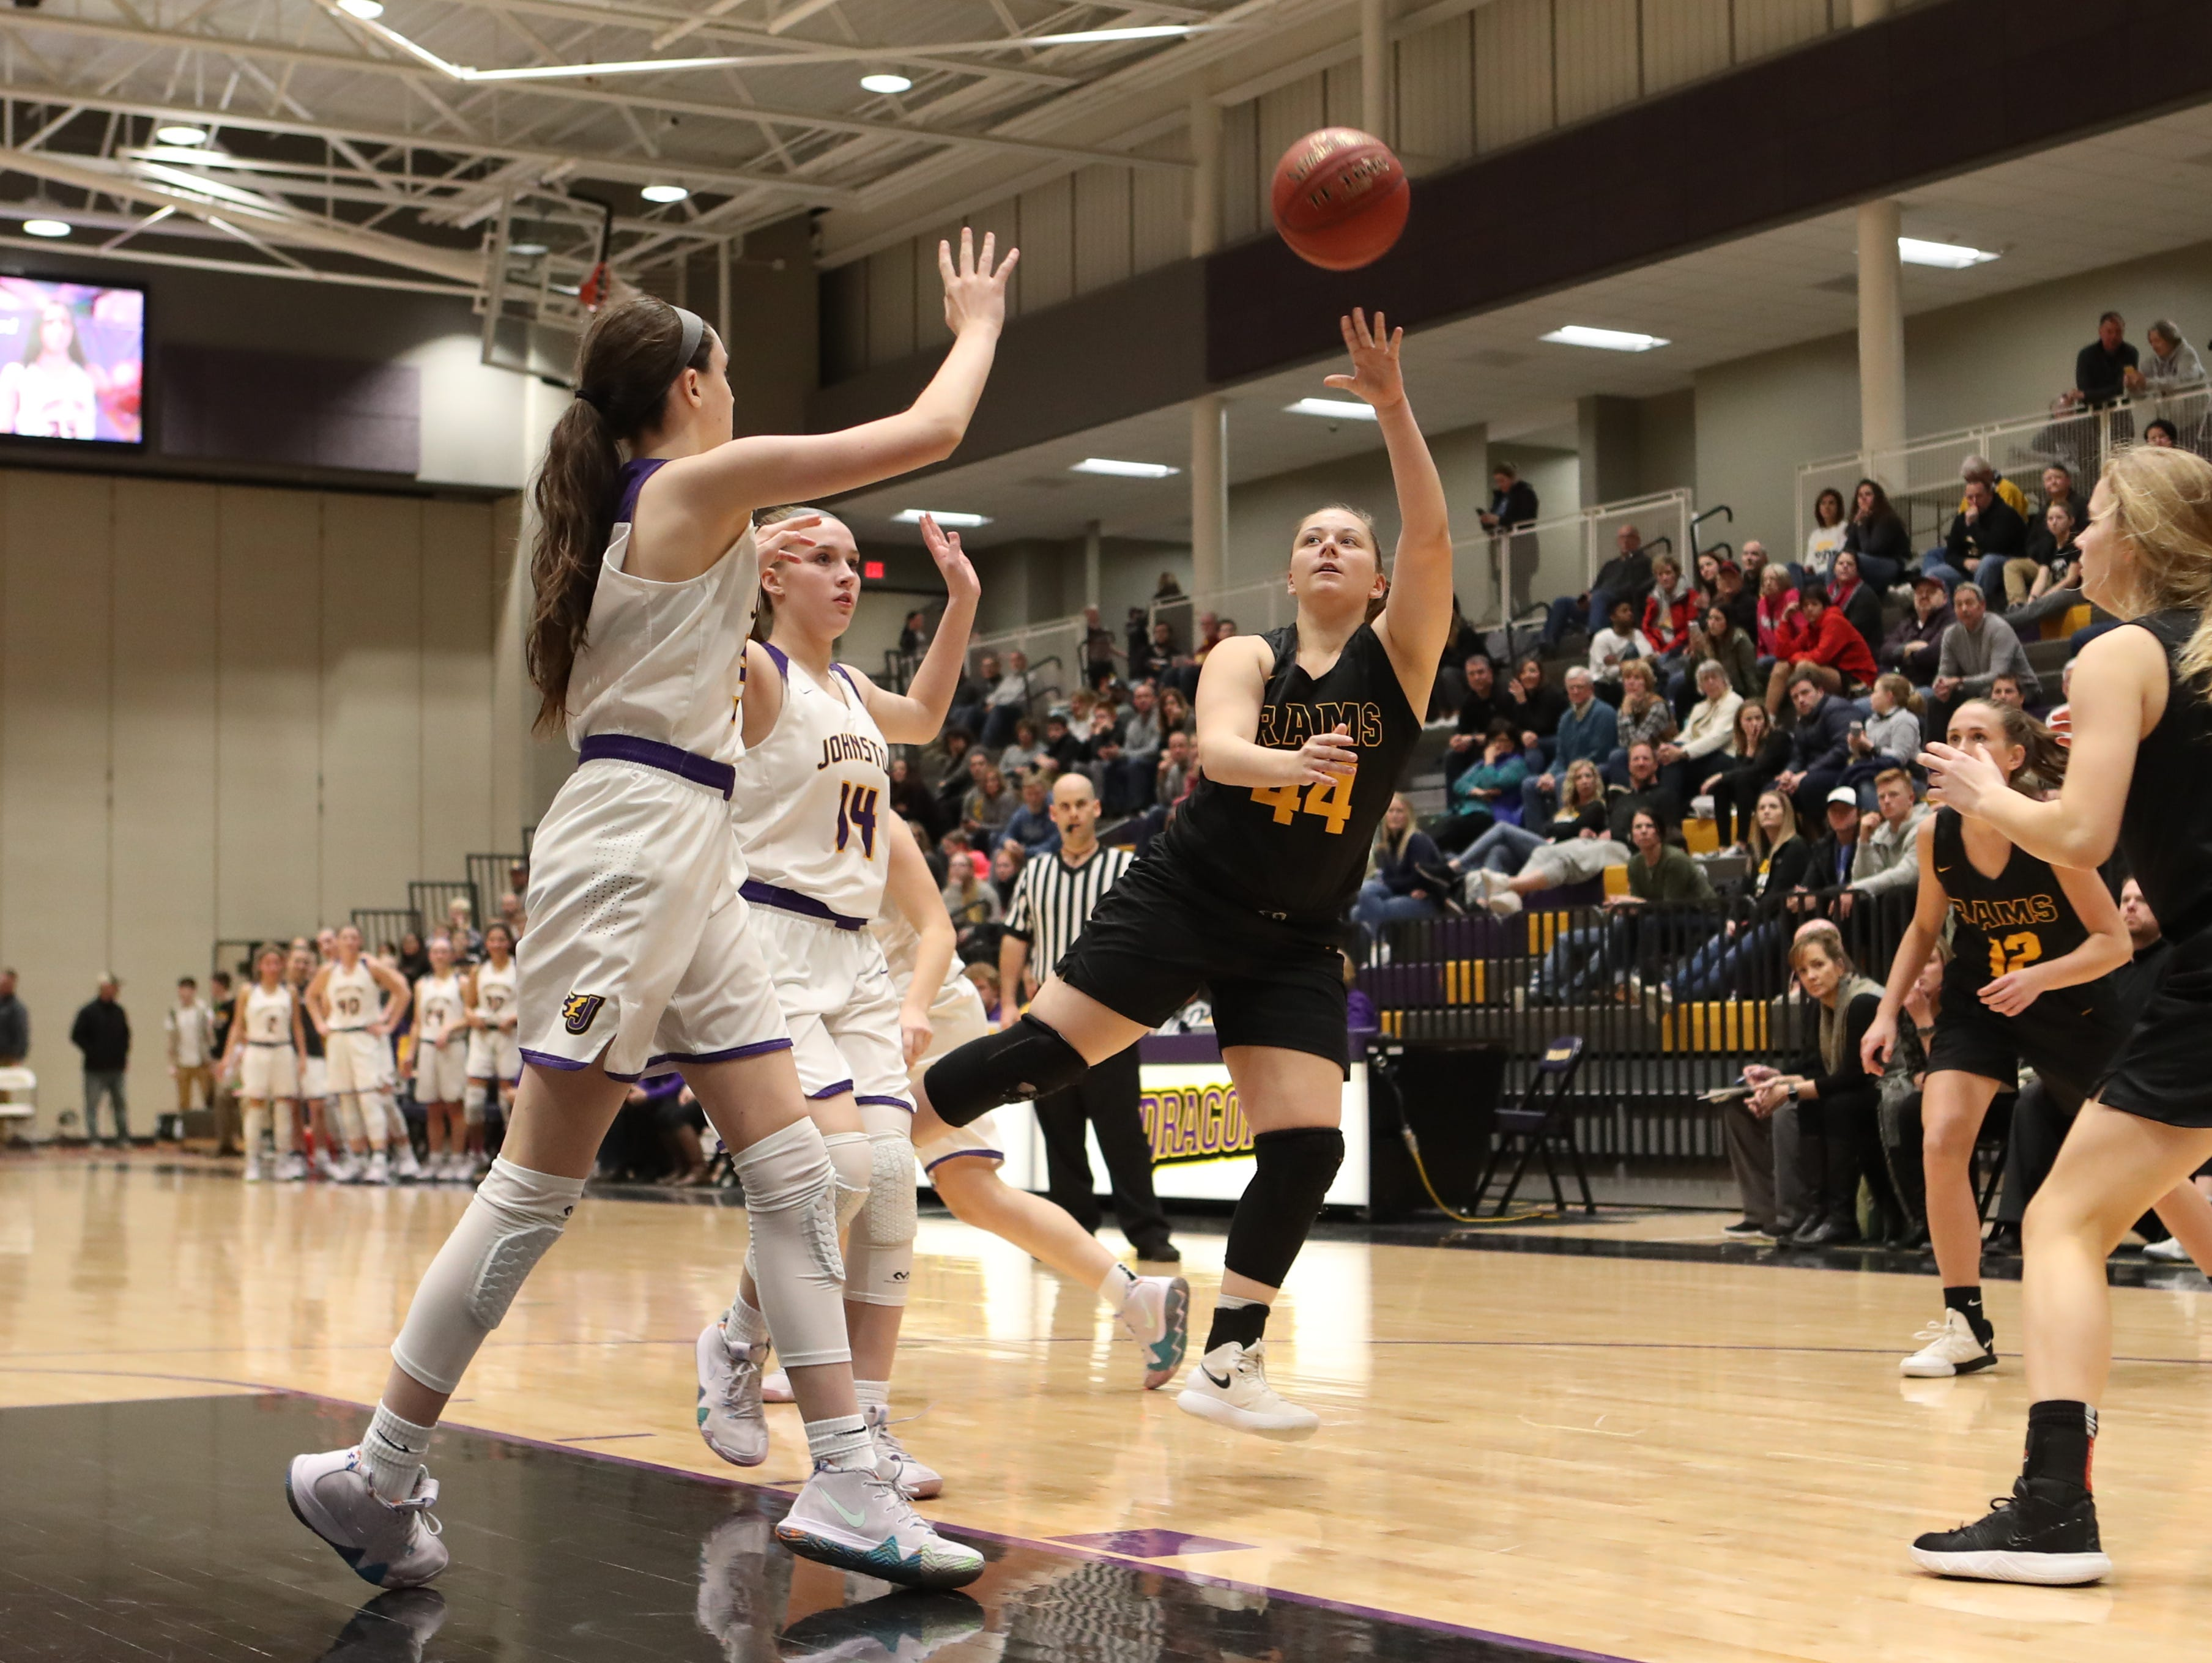 Southeast Polk's Kadence Williams (44) shoots from the outside Feb. 5 in a game against No. 1 Johnston at Johnston High School. The Dragons won the game 89-67.